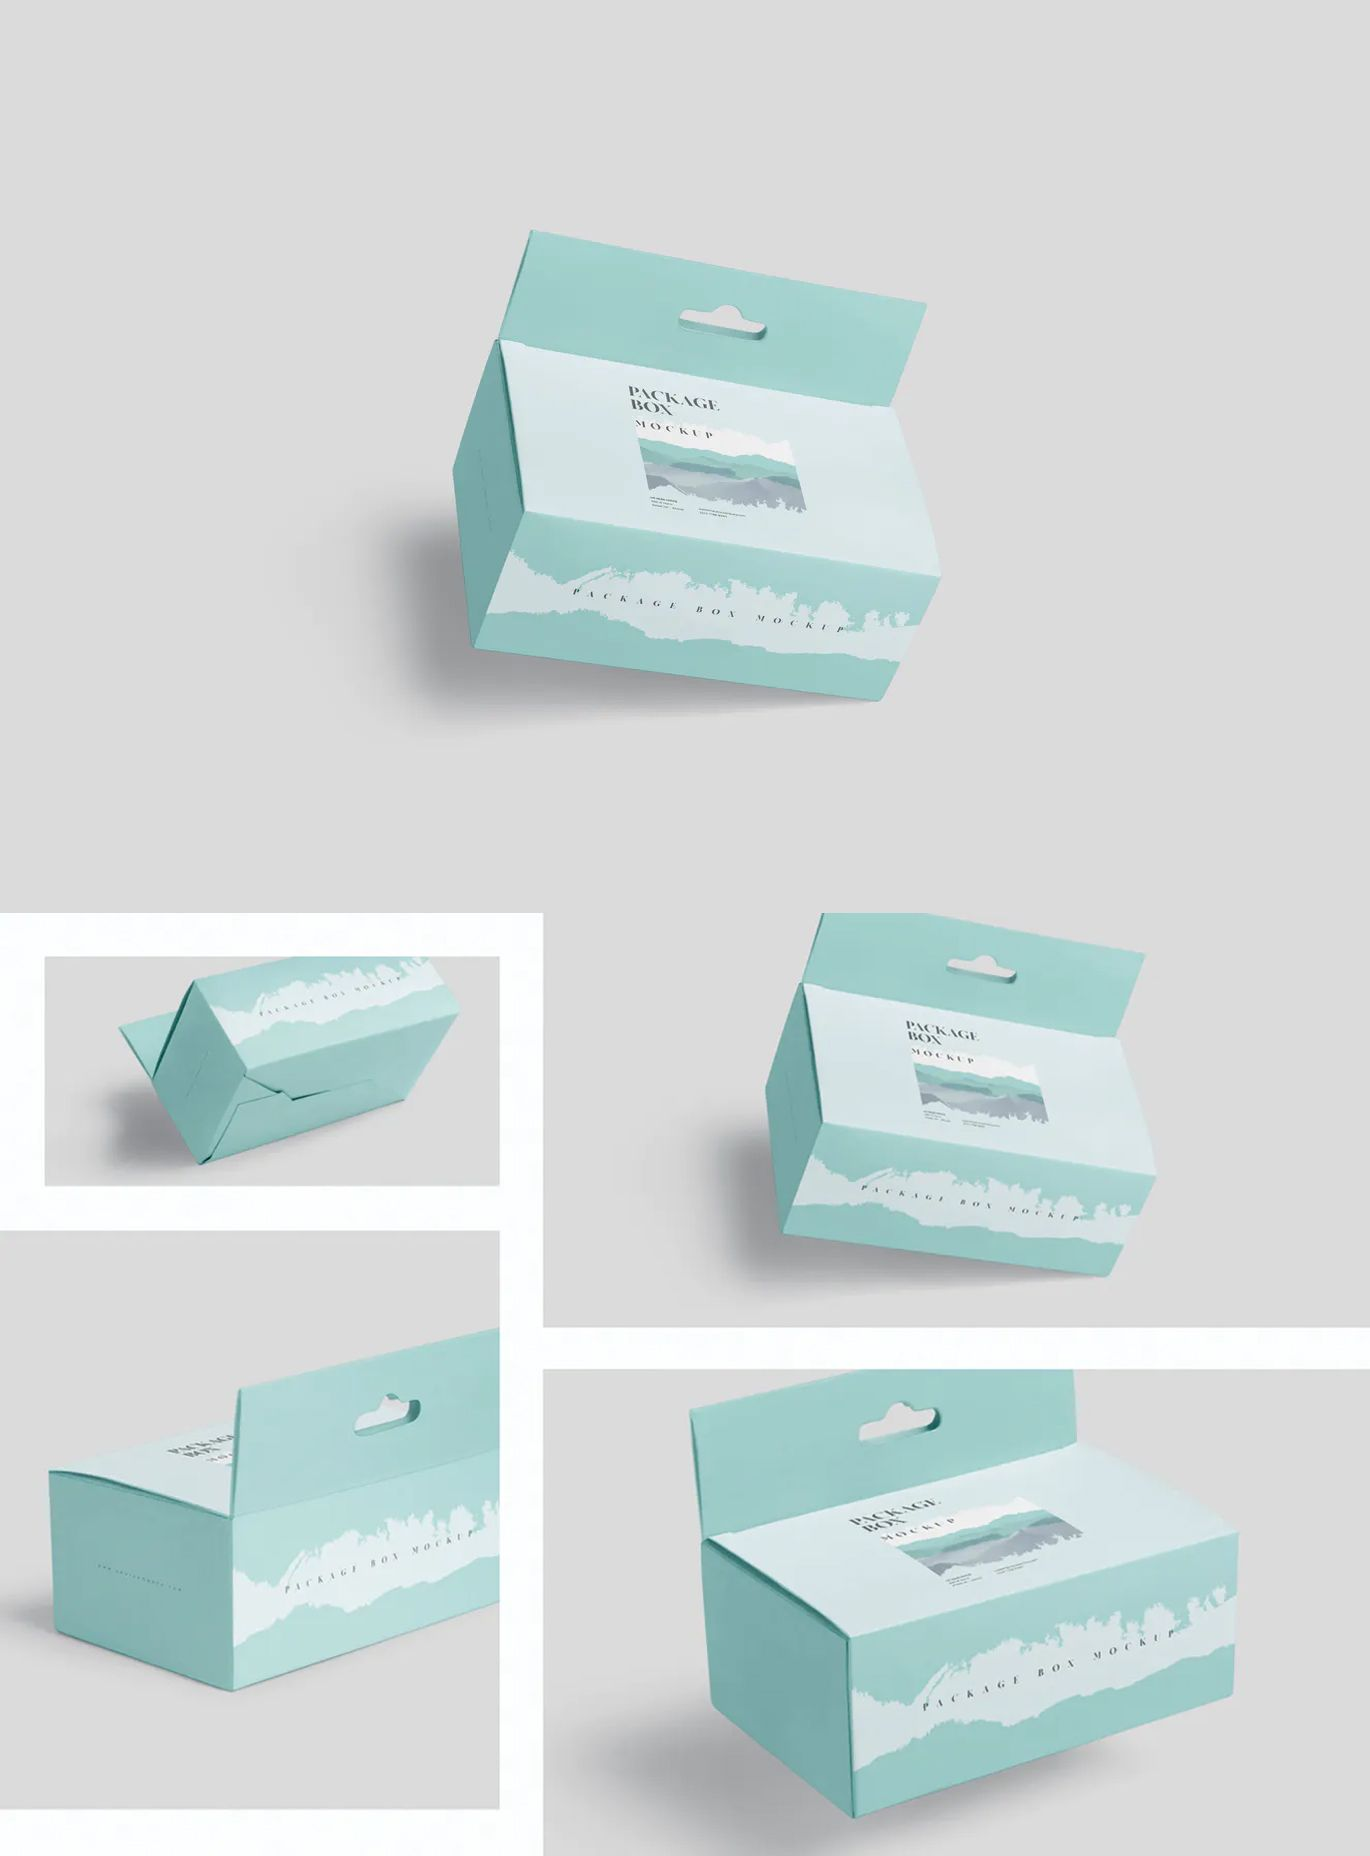 Download Package Box Mockup Long Rectangle With Hanger By Gfxfoundry On Envato Elements Box Mockup Box Packaging Packaging